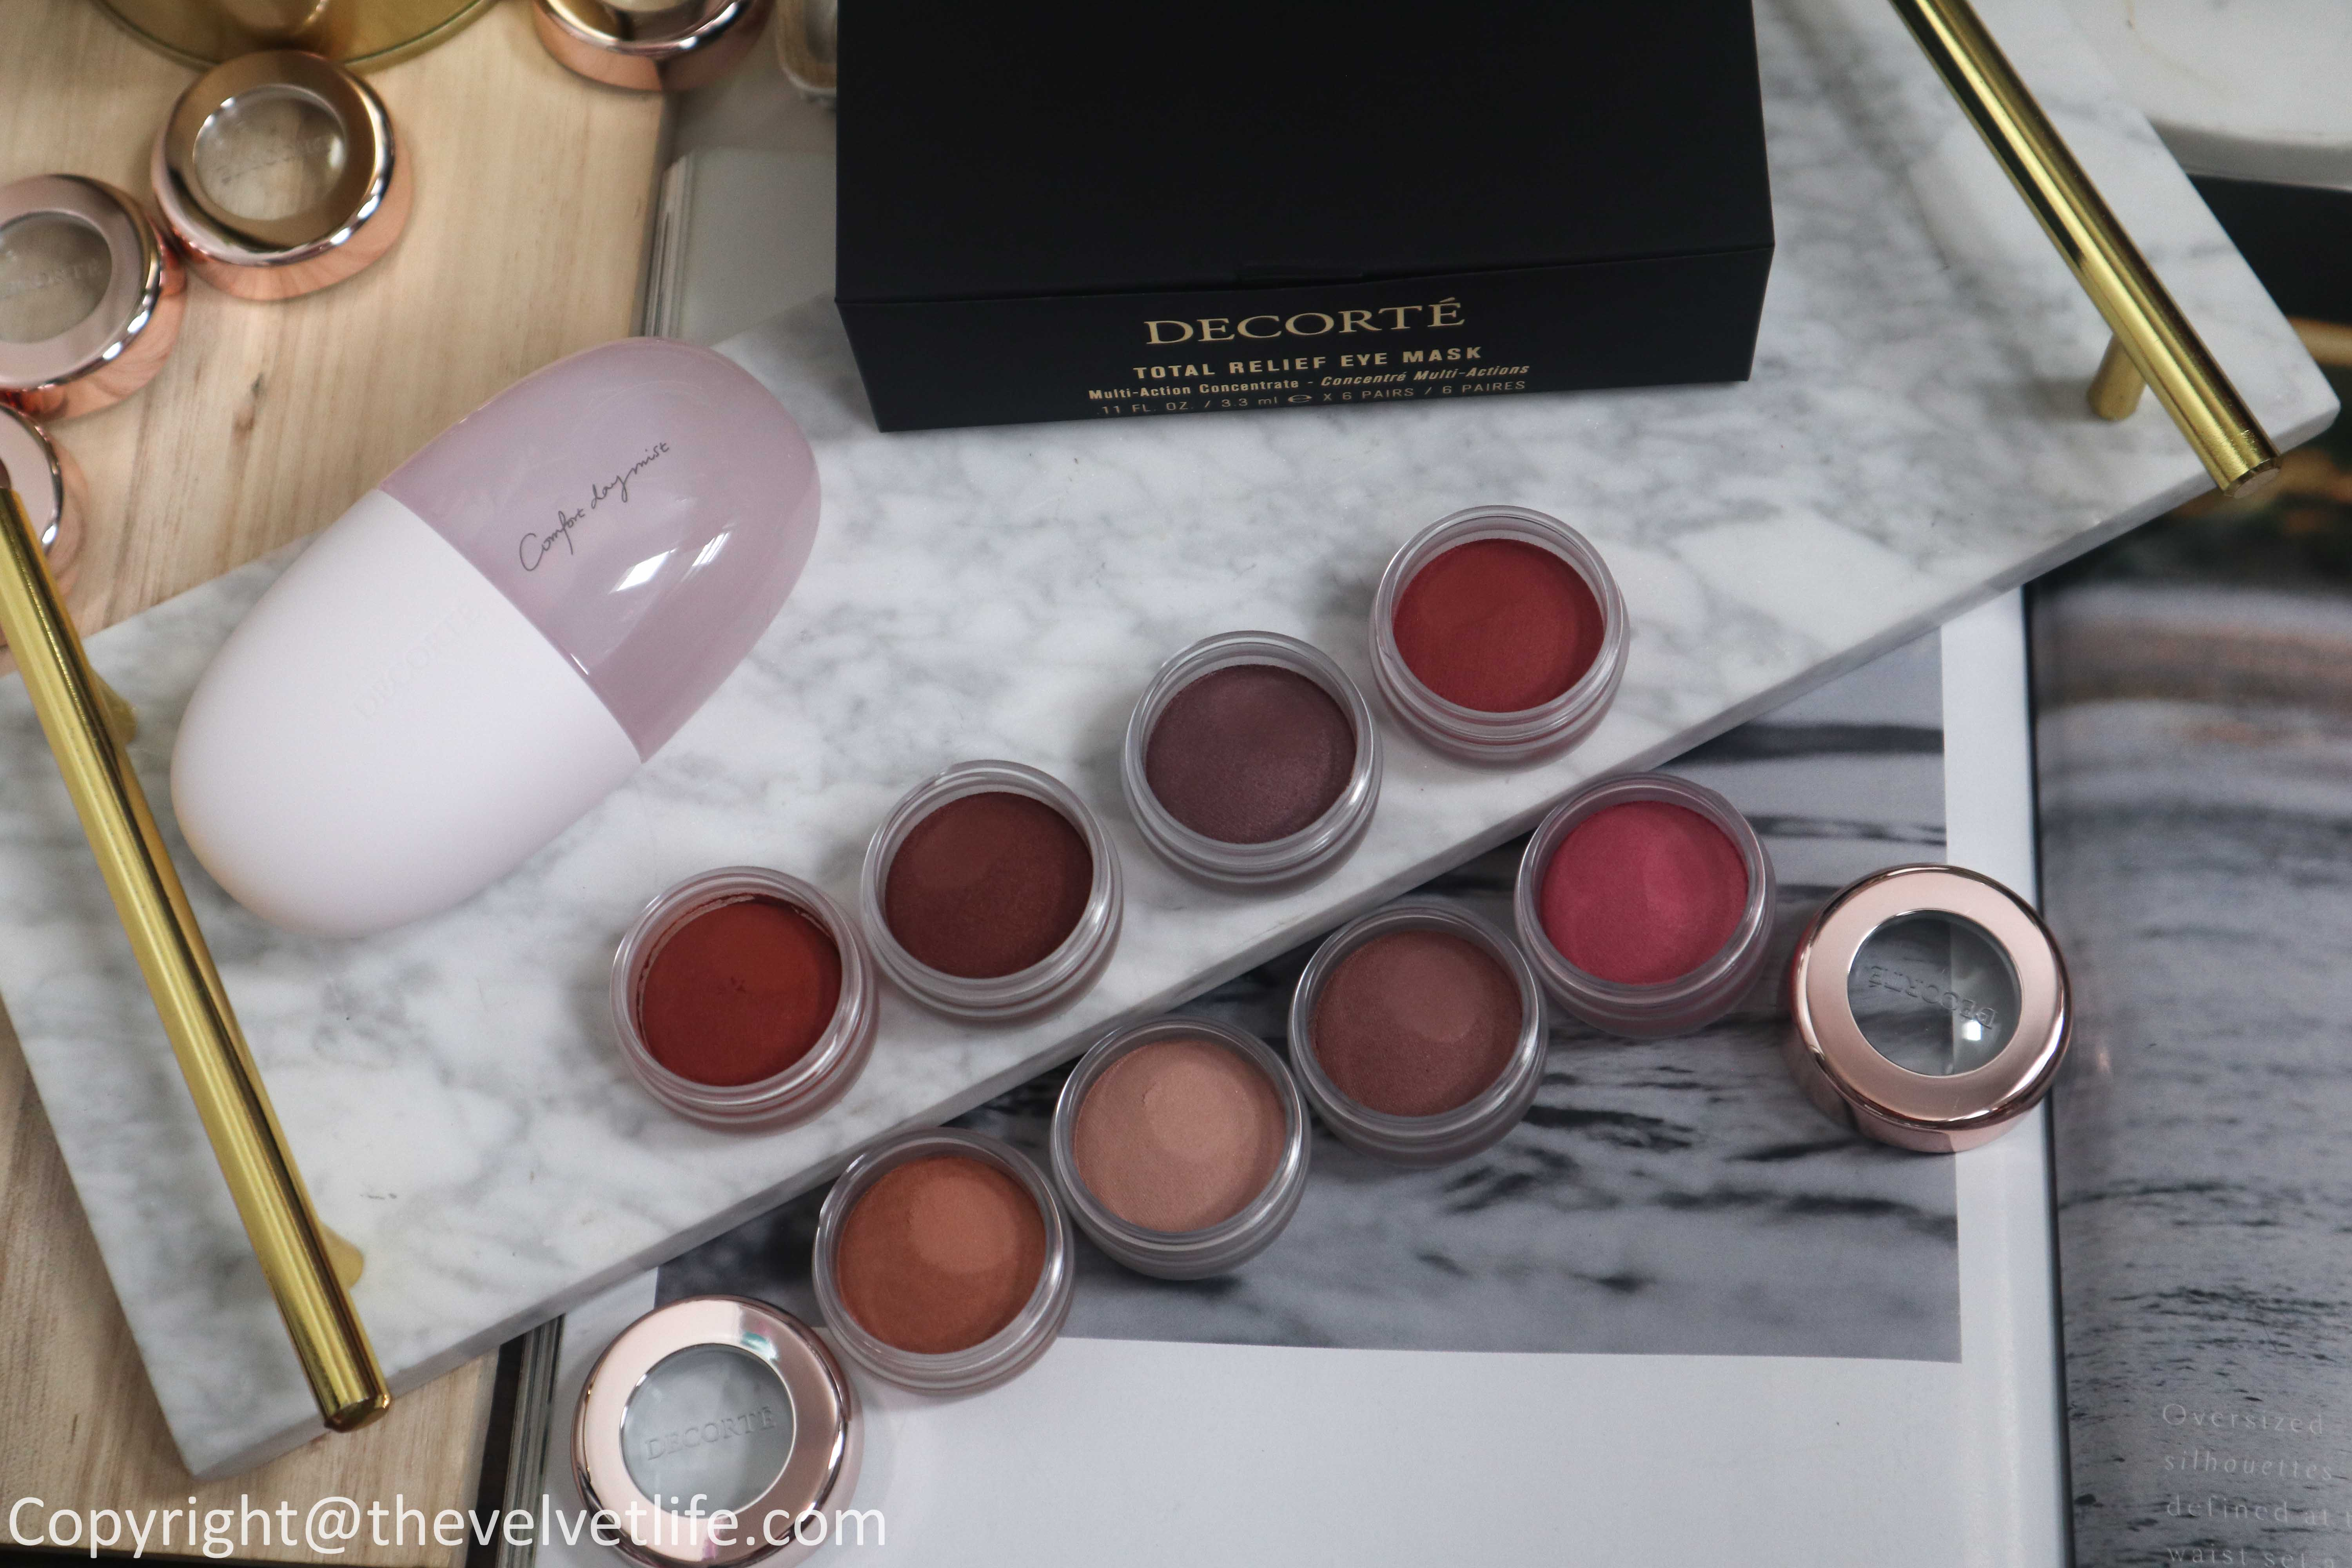 Decorte Eye Glow Gem new shades review and swatches, Decorte Comfort Day Mist